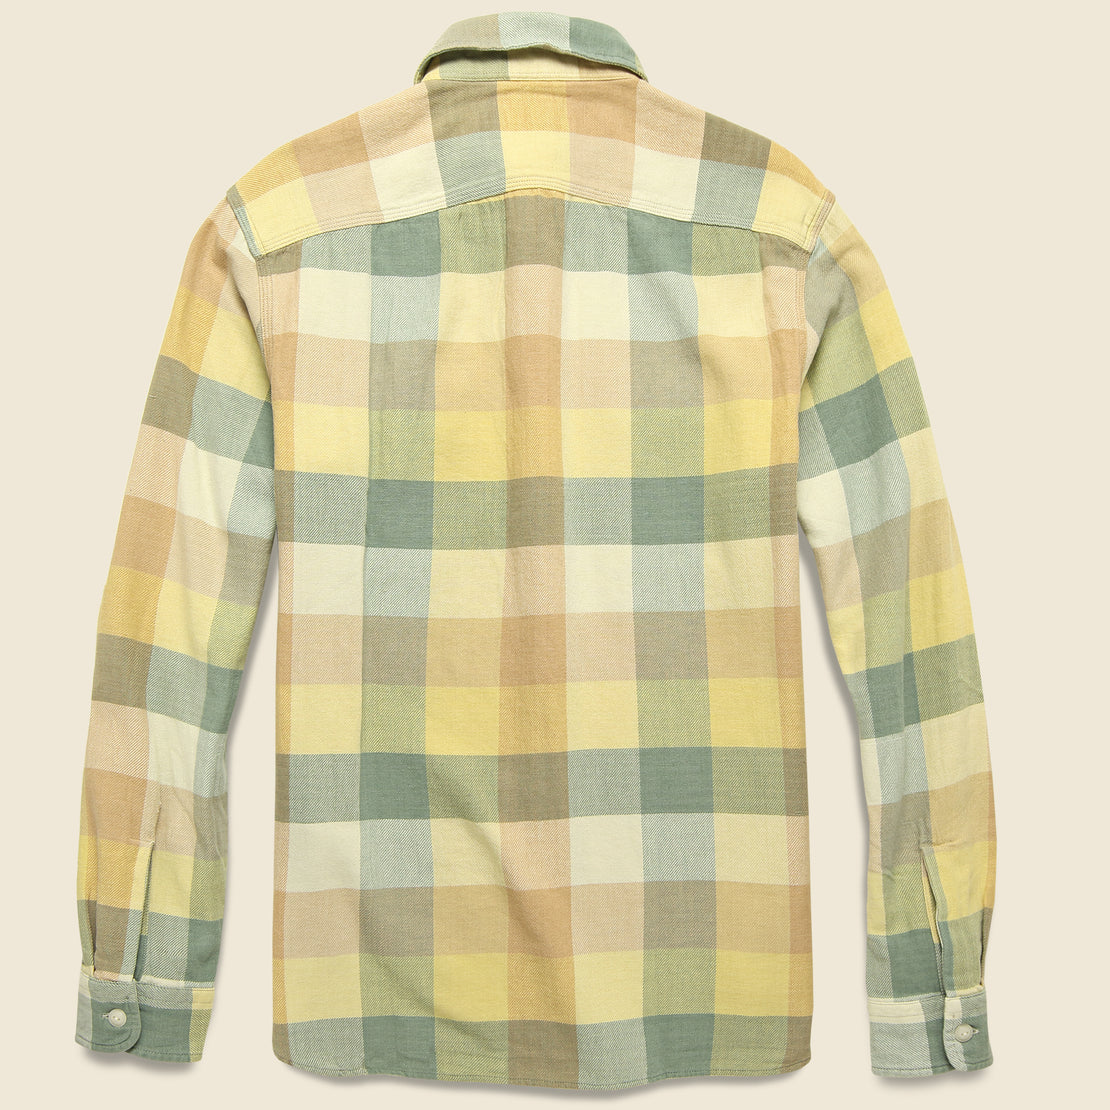 Matlock Twill Workshirt - Yellow/Green